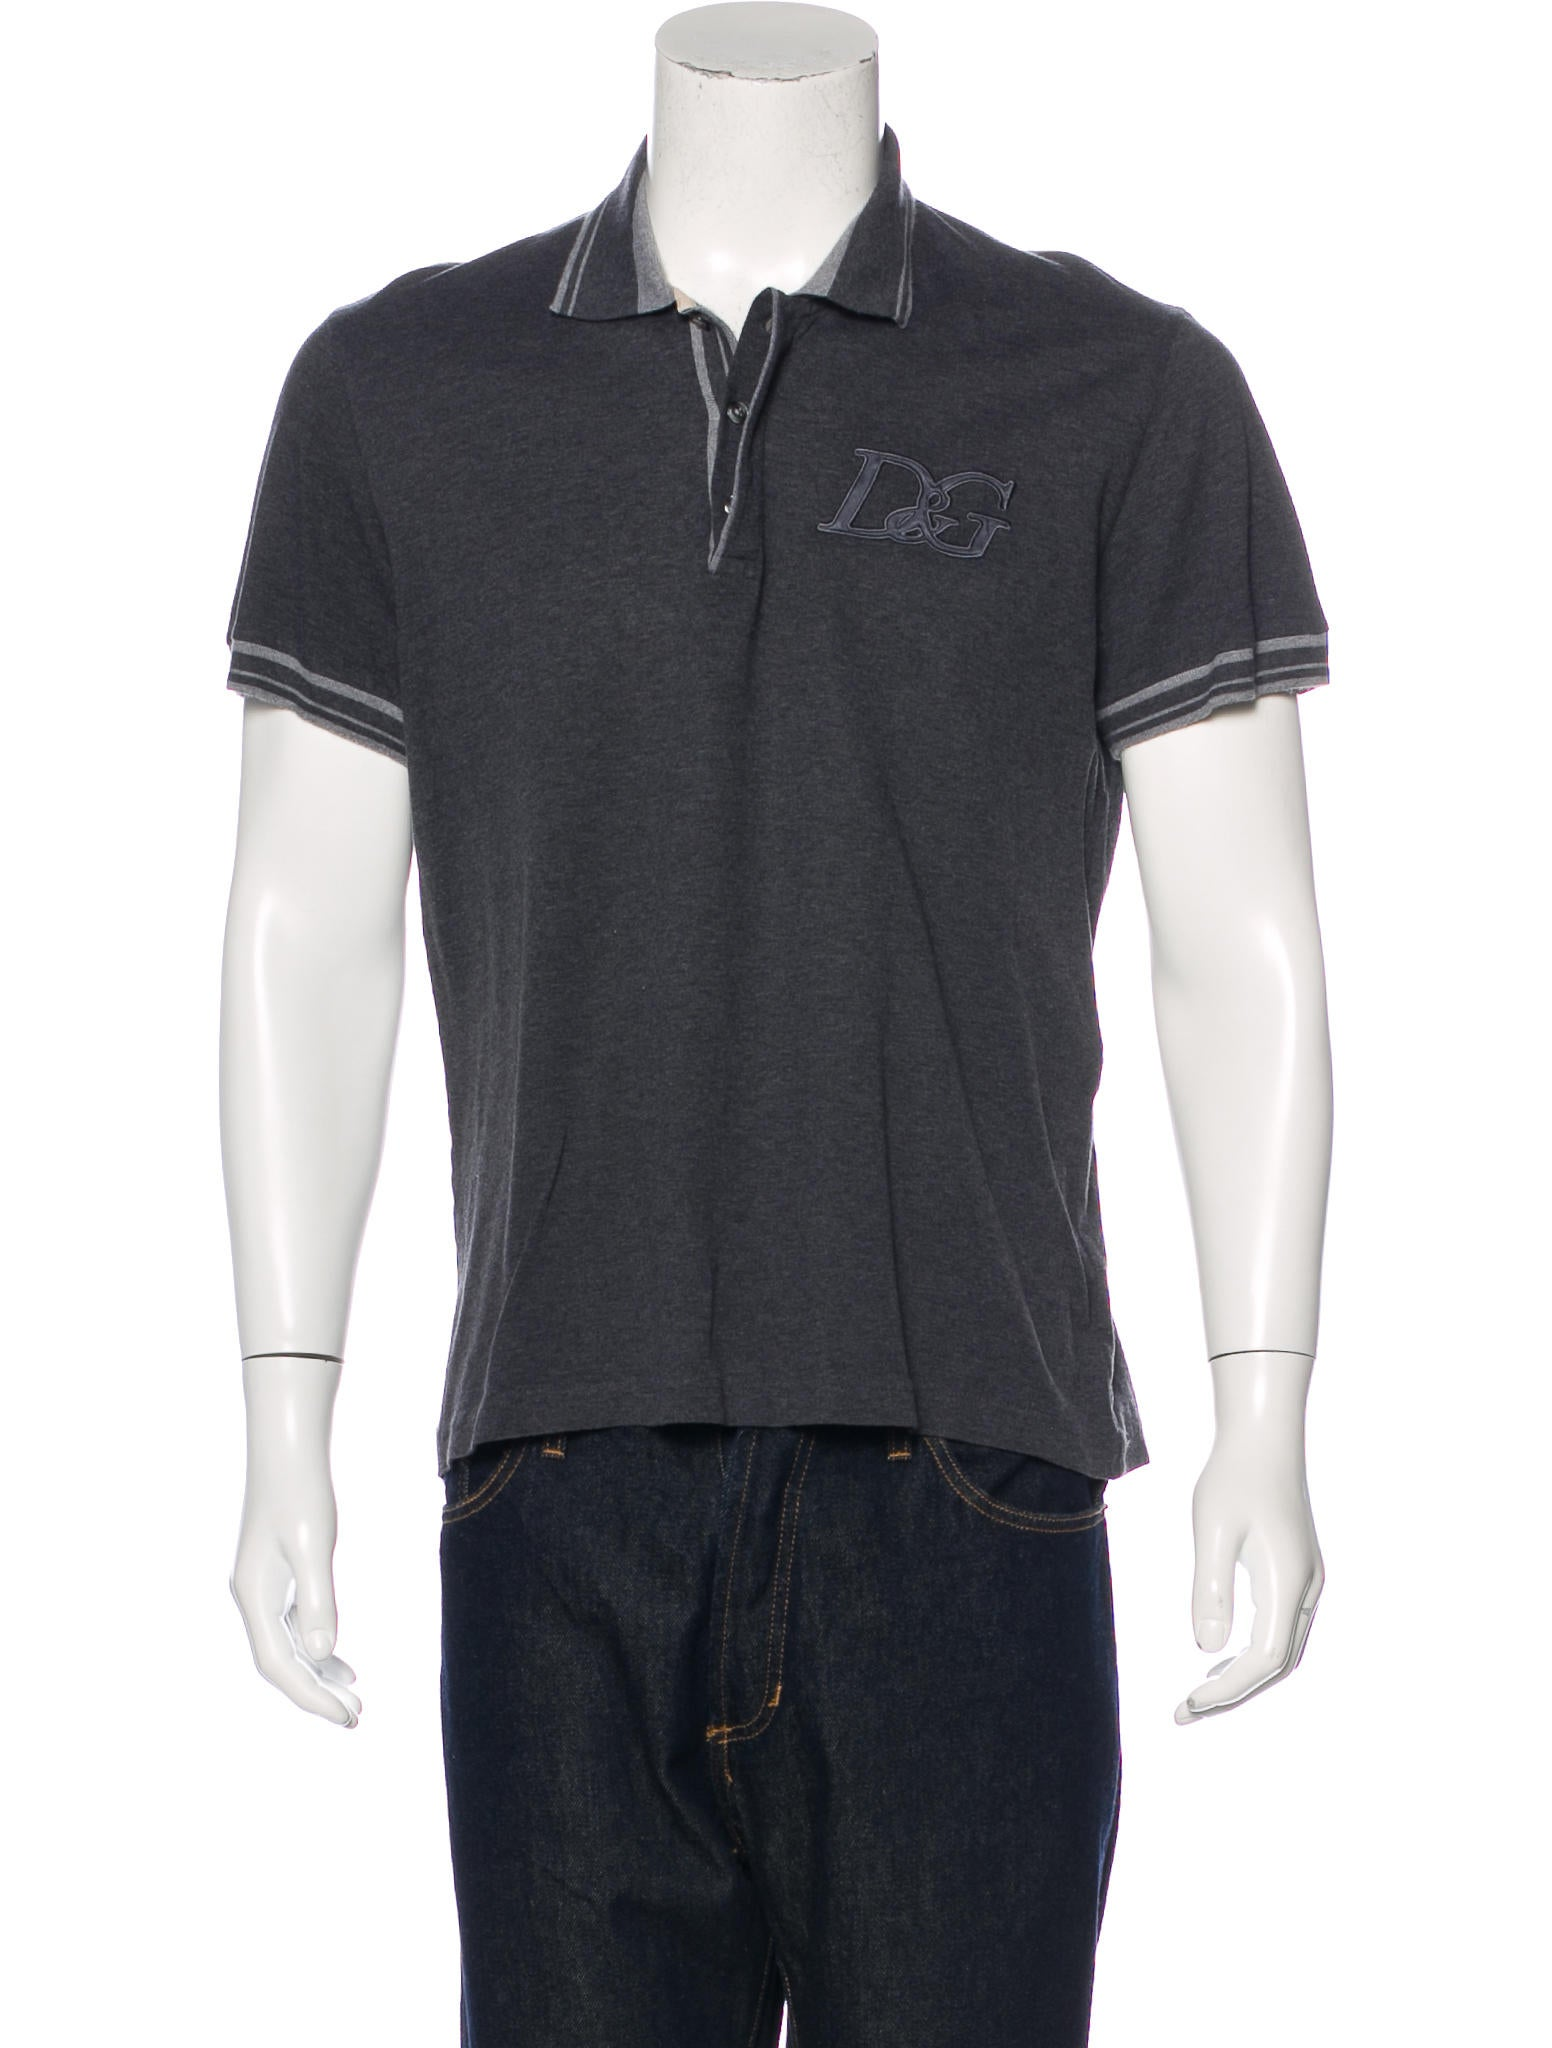 D g embroidered polo shirt clothing wdg36249 the for Embroidered polo shirts online